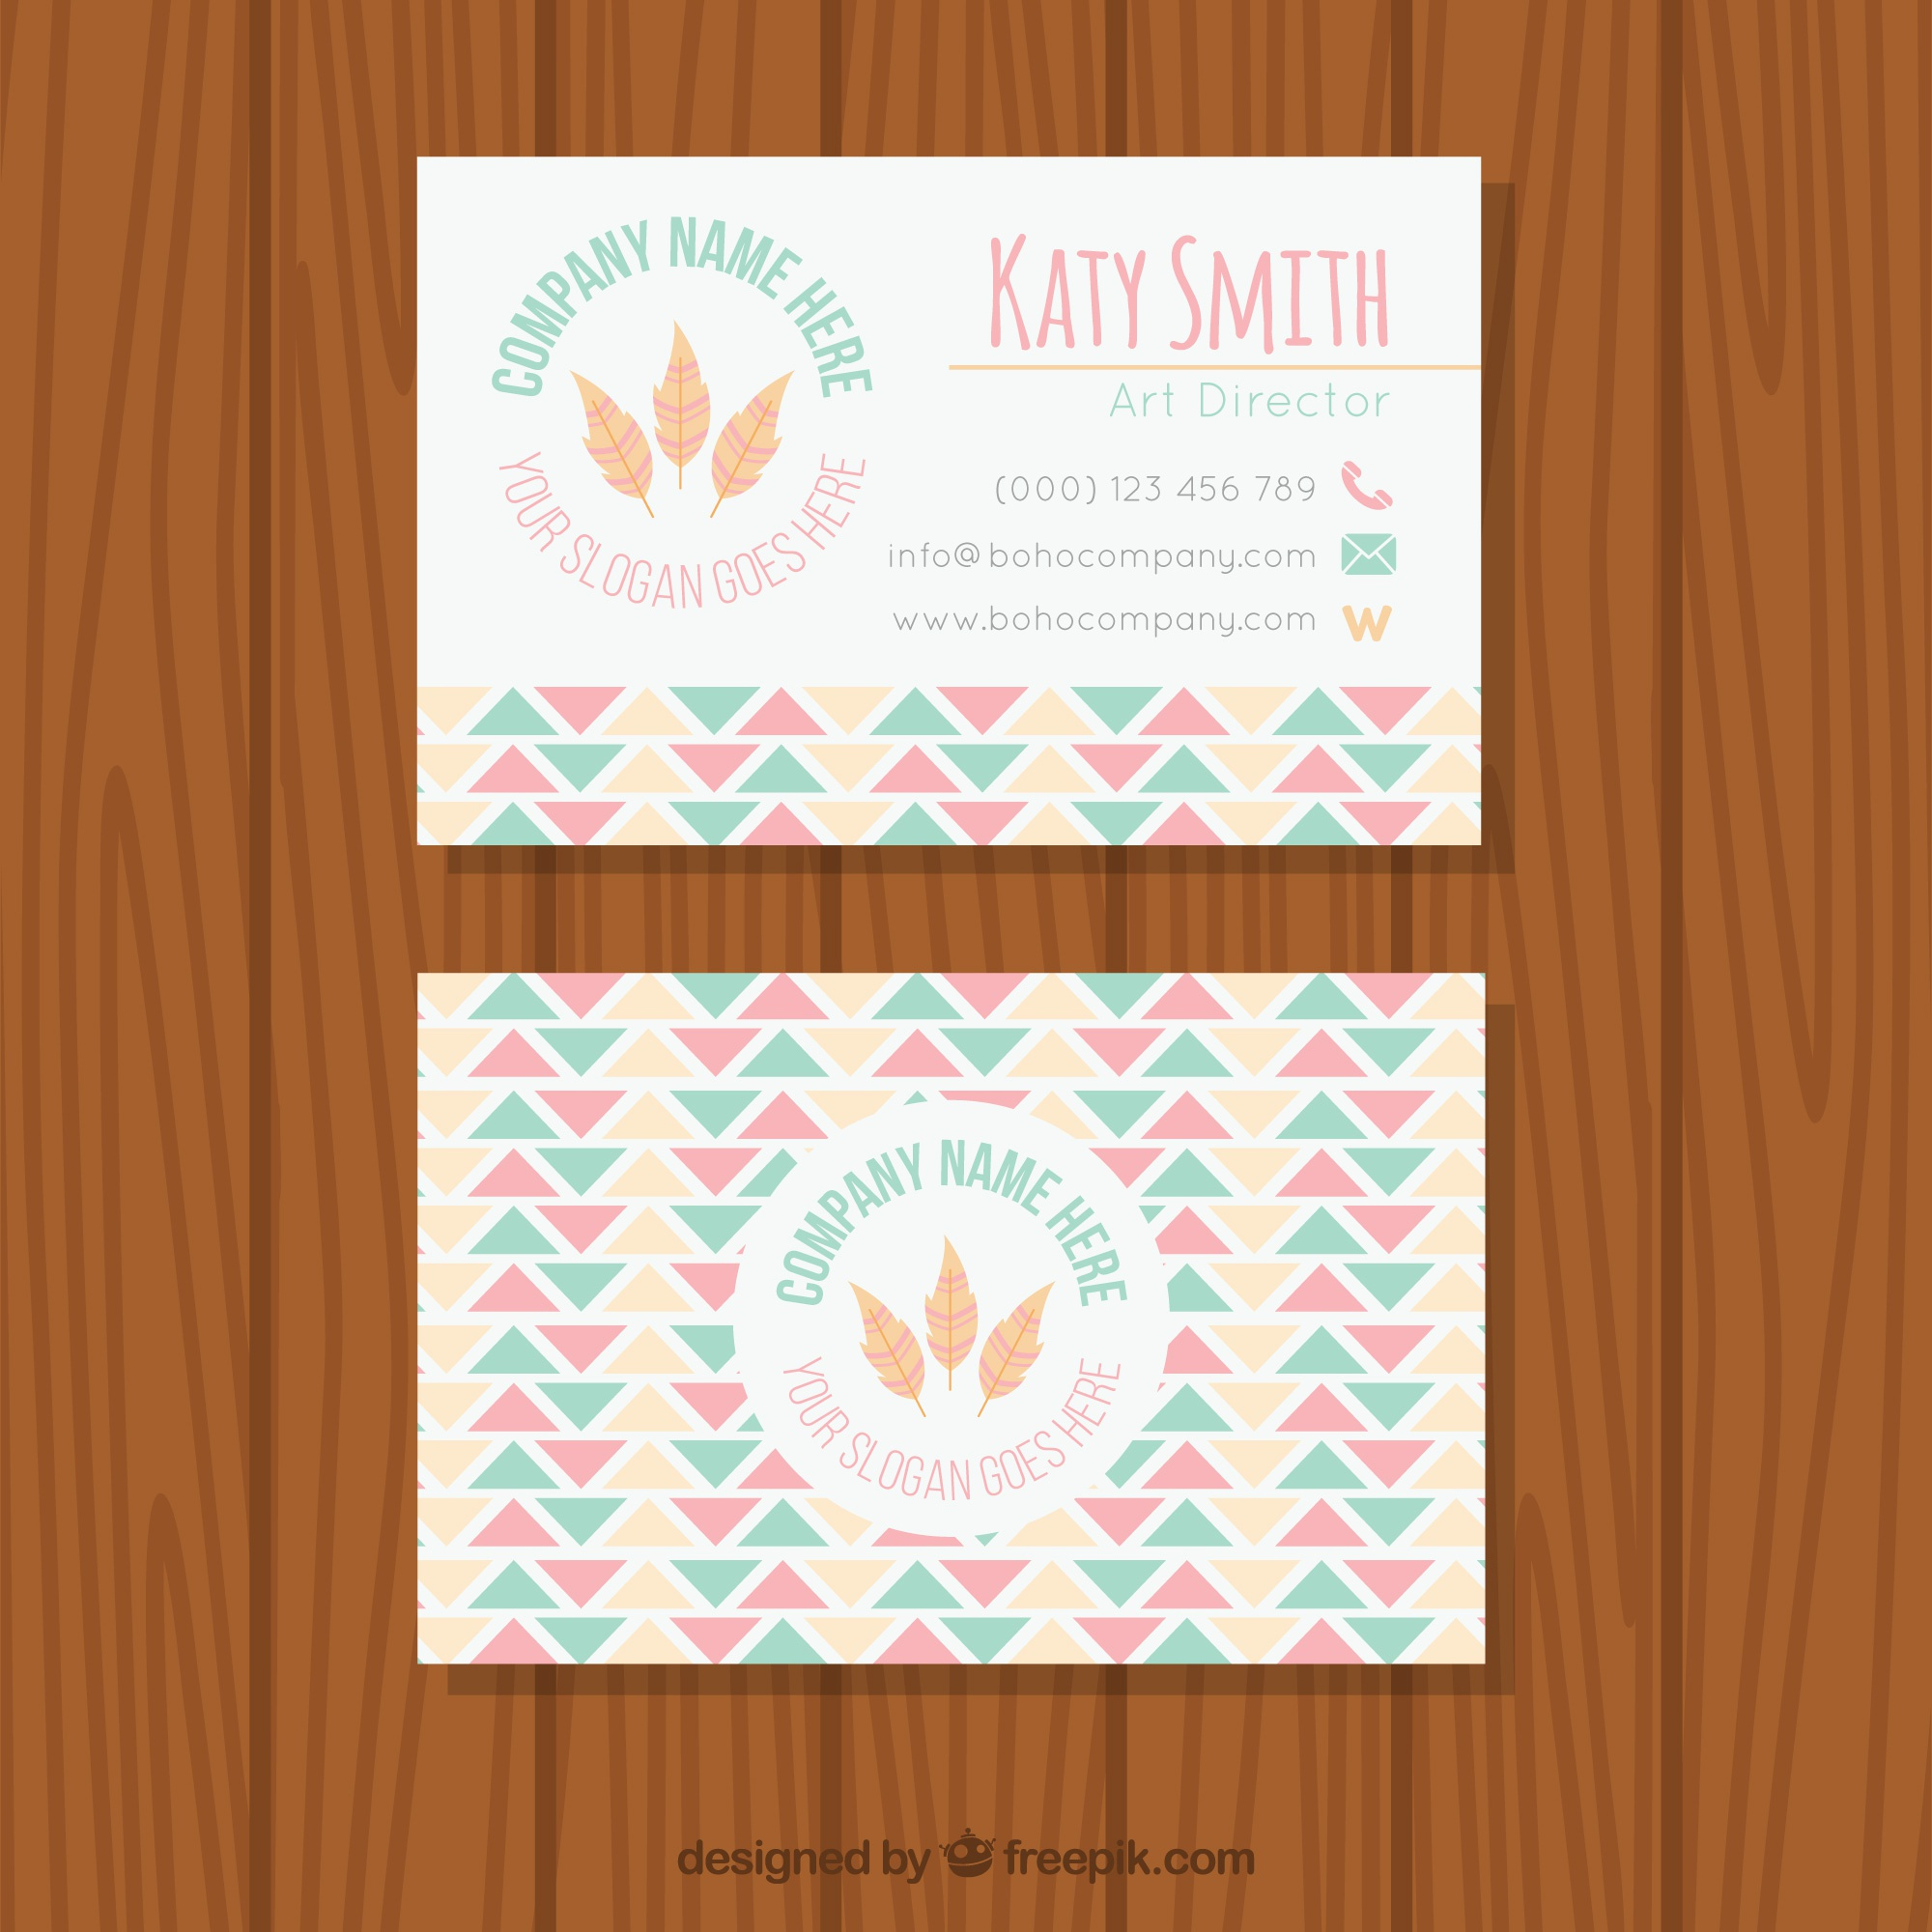 Flat pastel business card in boho style